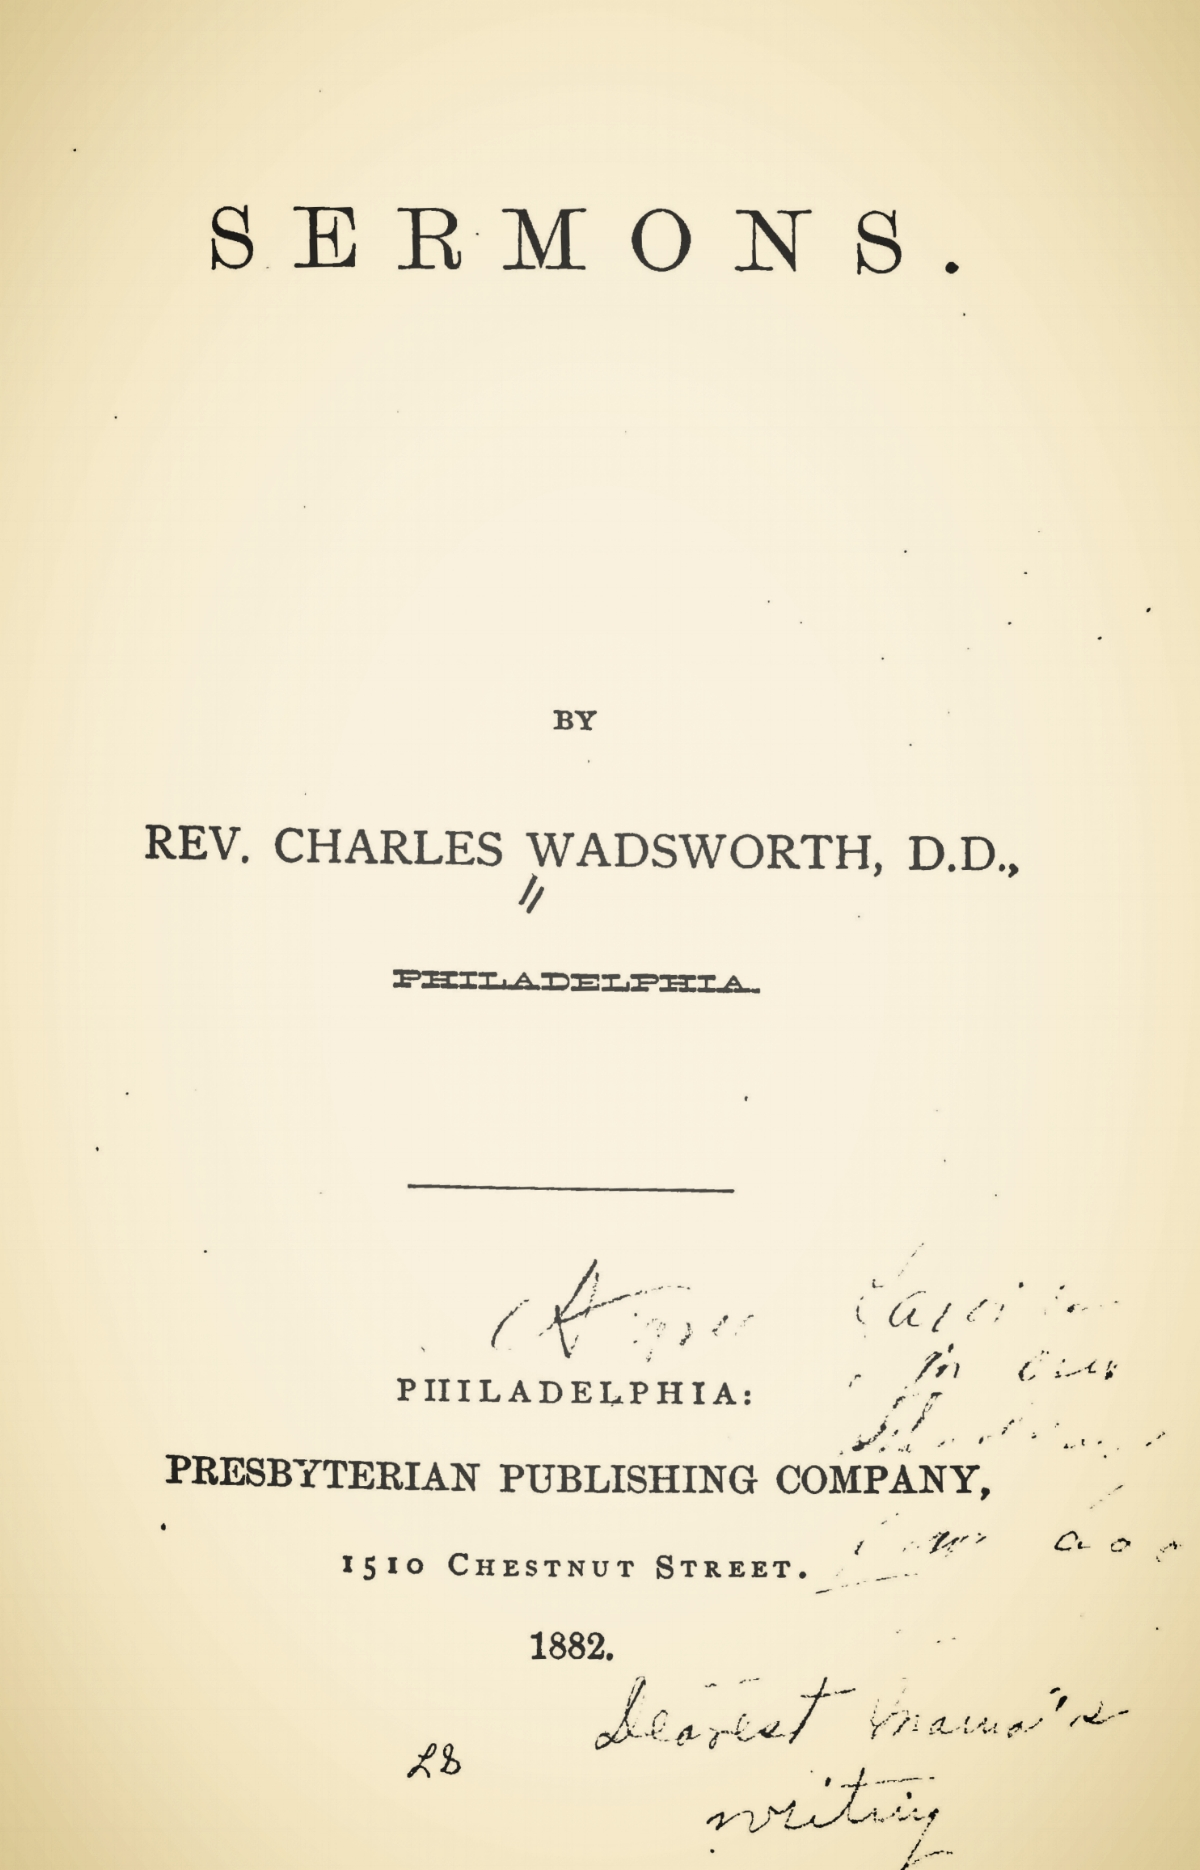 Wadsworth, Charles, Sermons 1882 Title Page.jpg